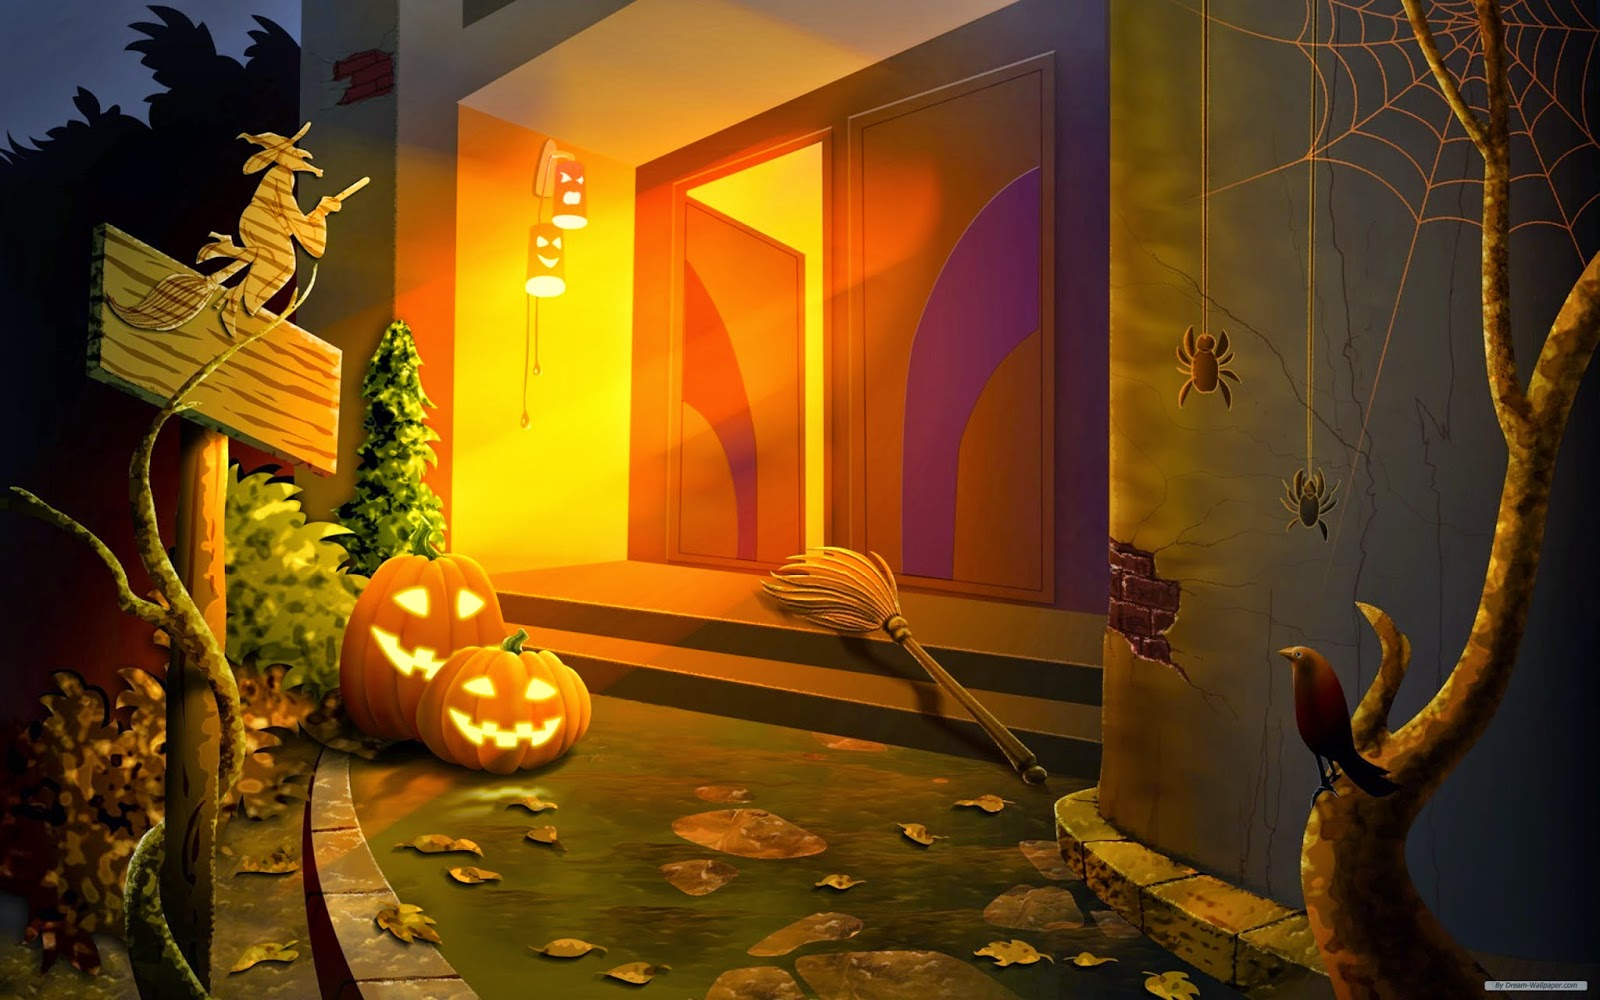 Halloween-house-image-cartoon-free-download.jpg